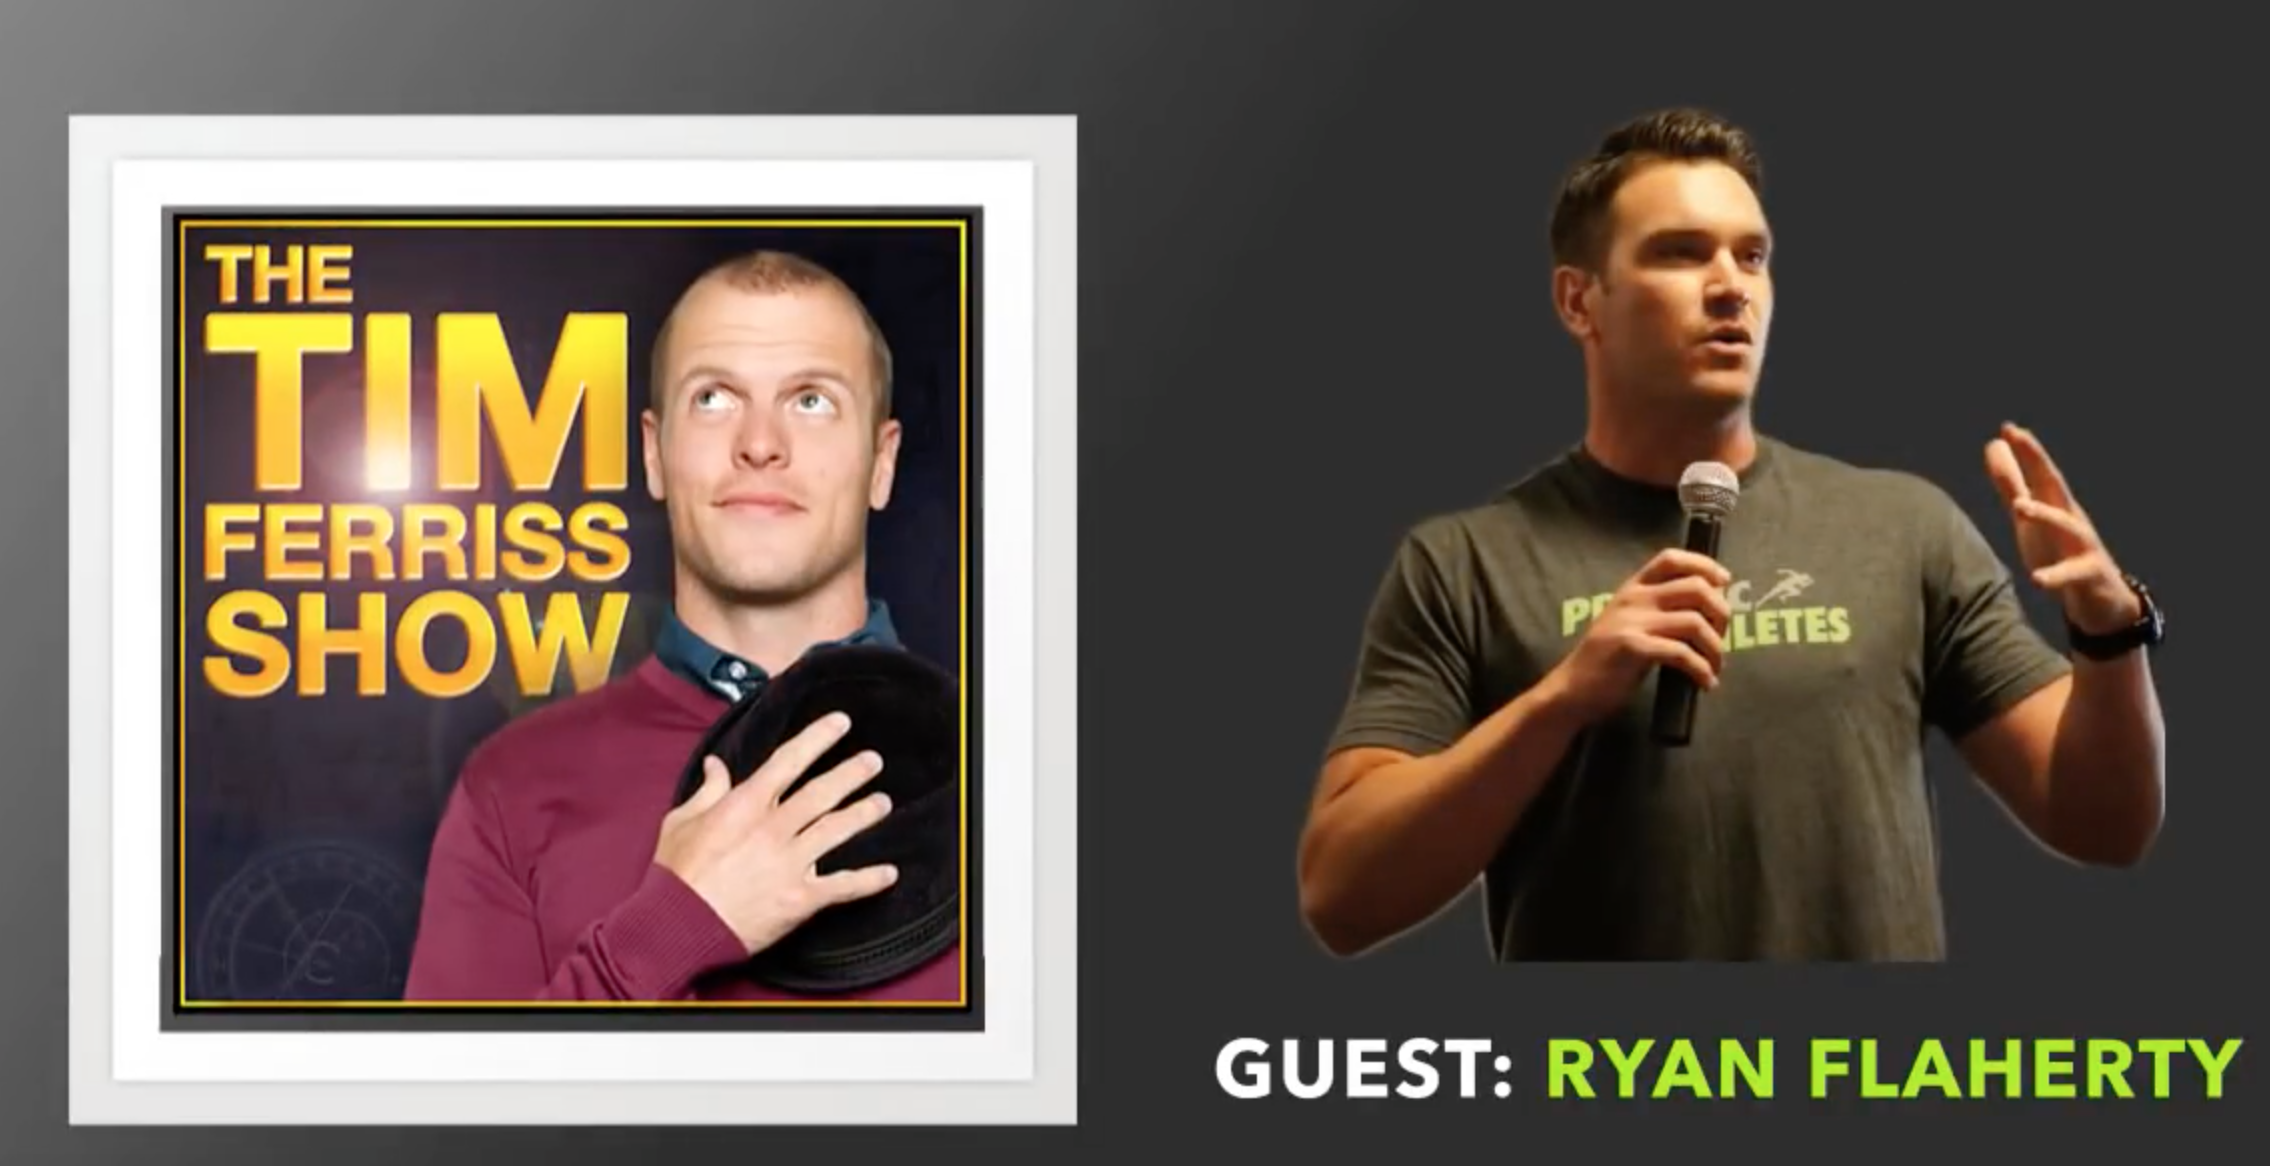 THE TIM FERRISS SHOW - PODCAST